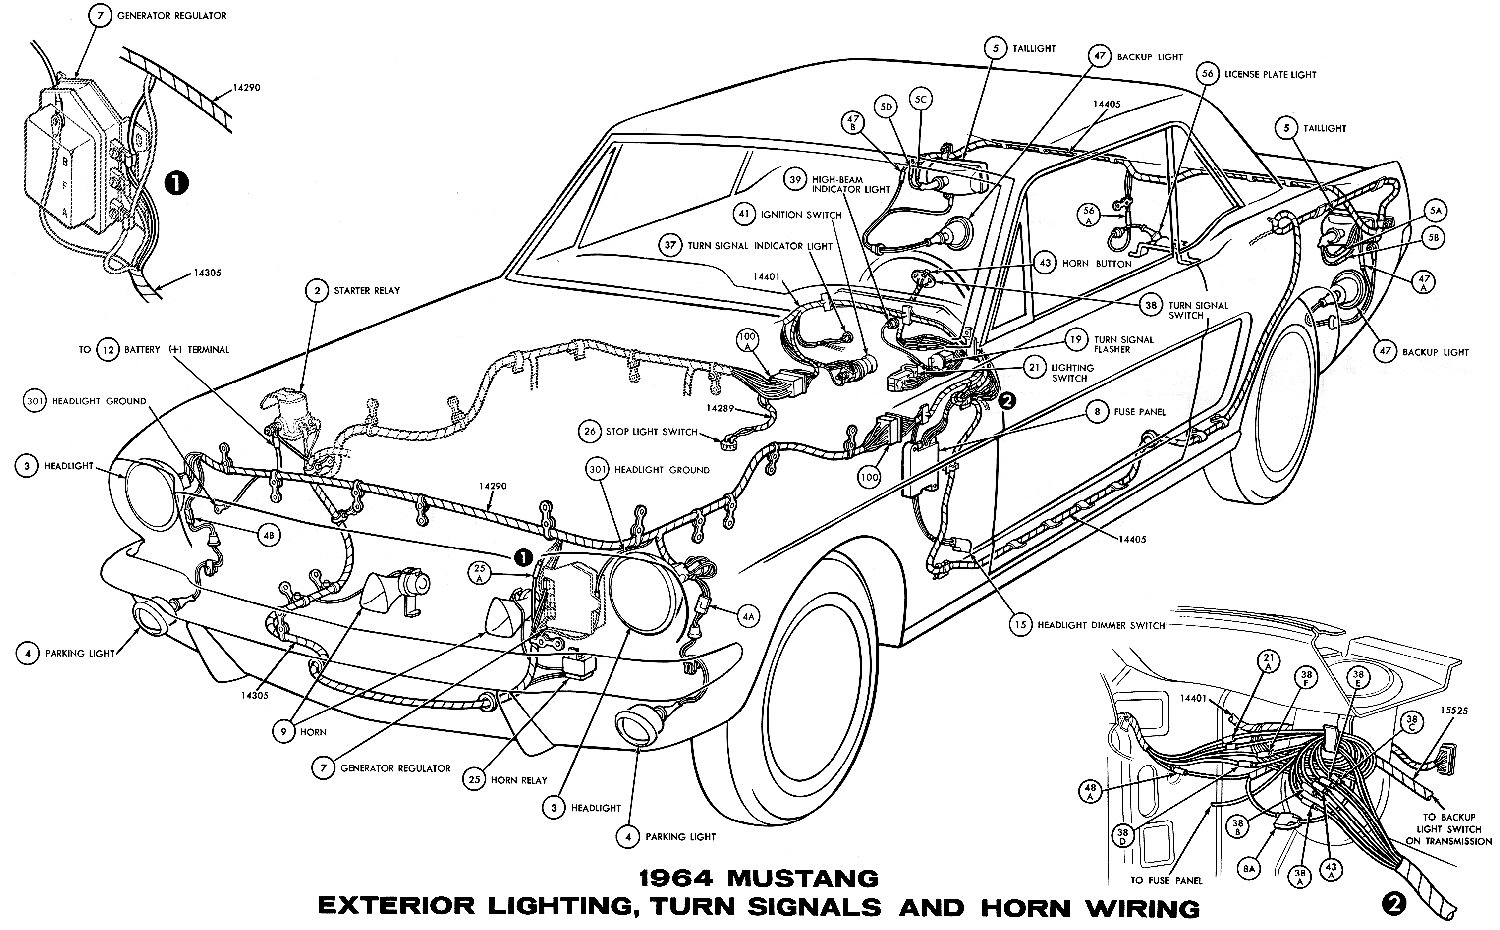 1967 Mustang Wiring Harness - Wiring Diagram Section on